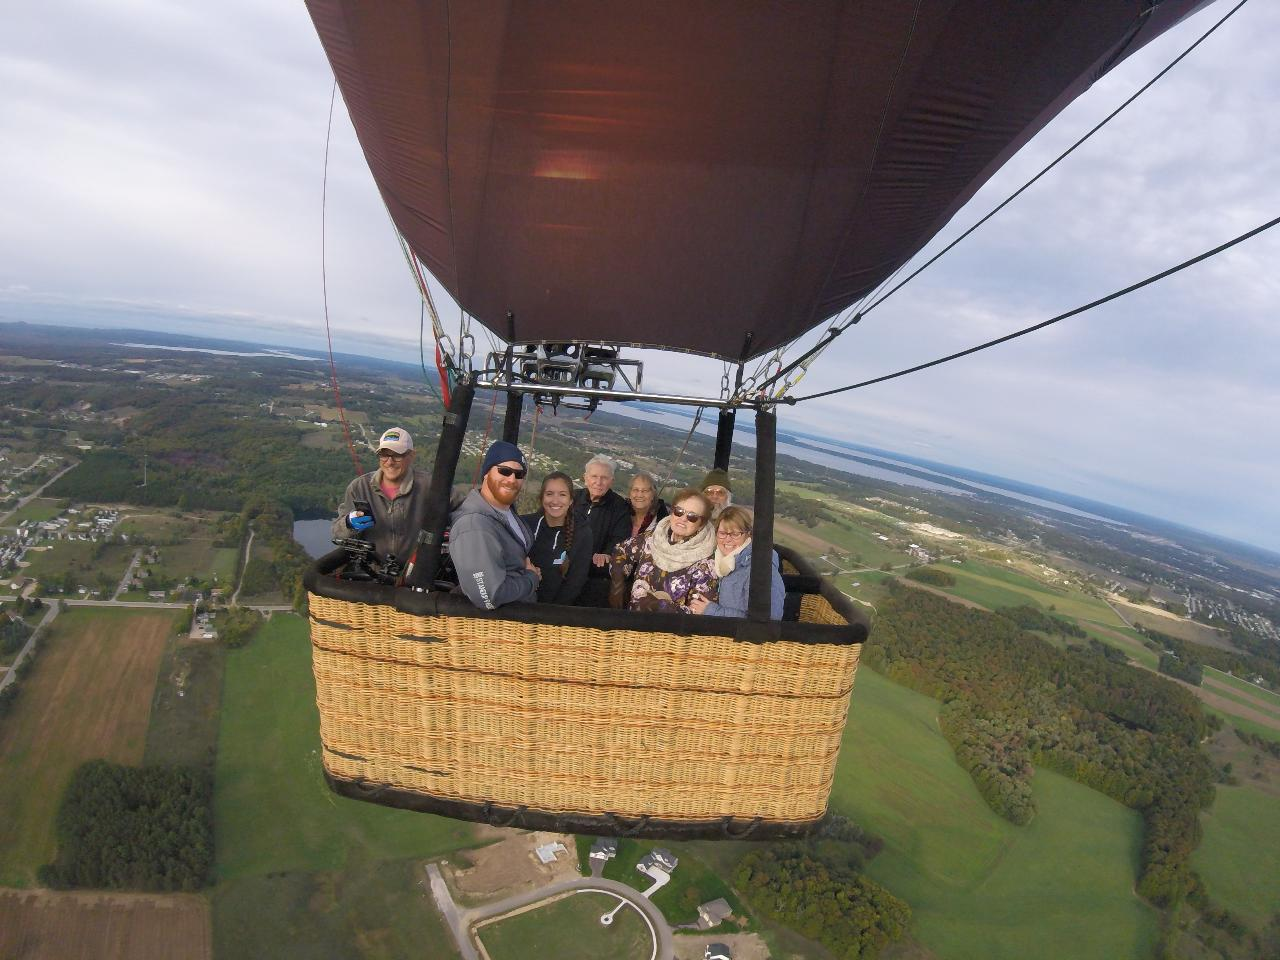 Weekend PM Shared Flight in Traverse City